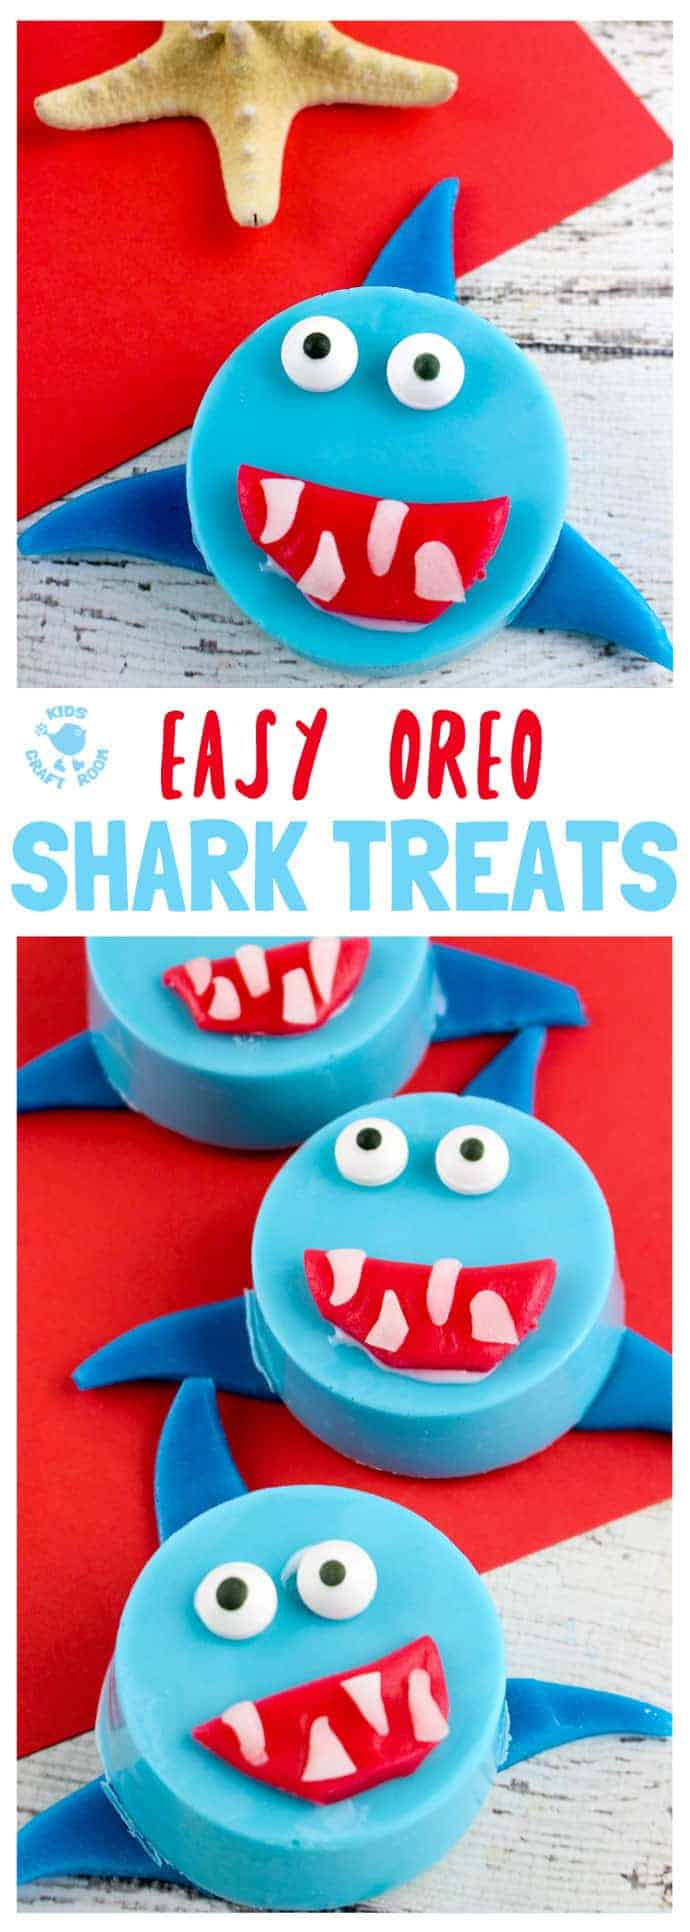 OREO SHARK TREATS are great for cooking with kids. A fin-tastic Summer activity perfect for shark week and ocean themes. Shark Cookies taste delicious and look adorable! #cookingwithkids #kidsrecipes #kidsinthekitchen  #desserts #oreos #cookies #biscuits #sharks #kidscraftroom #sharkweek #sharkactivities